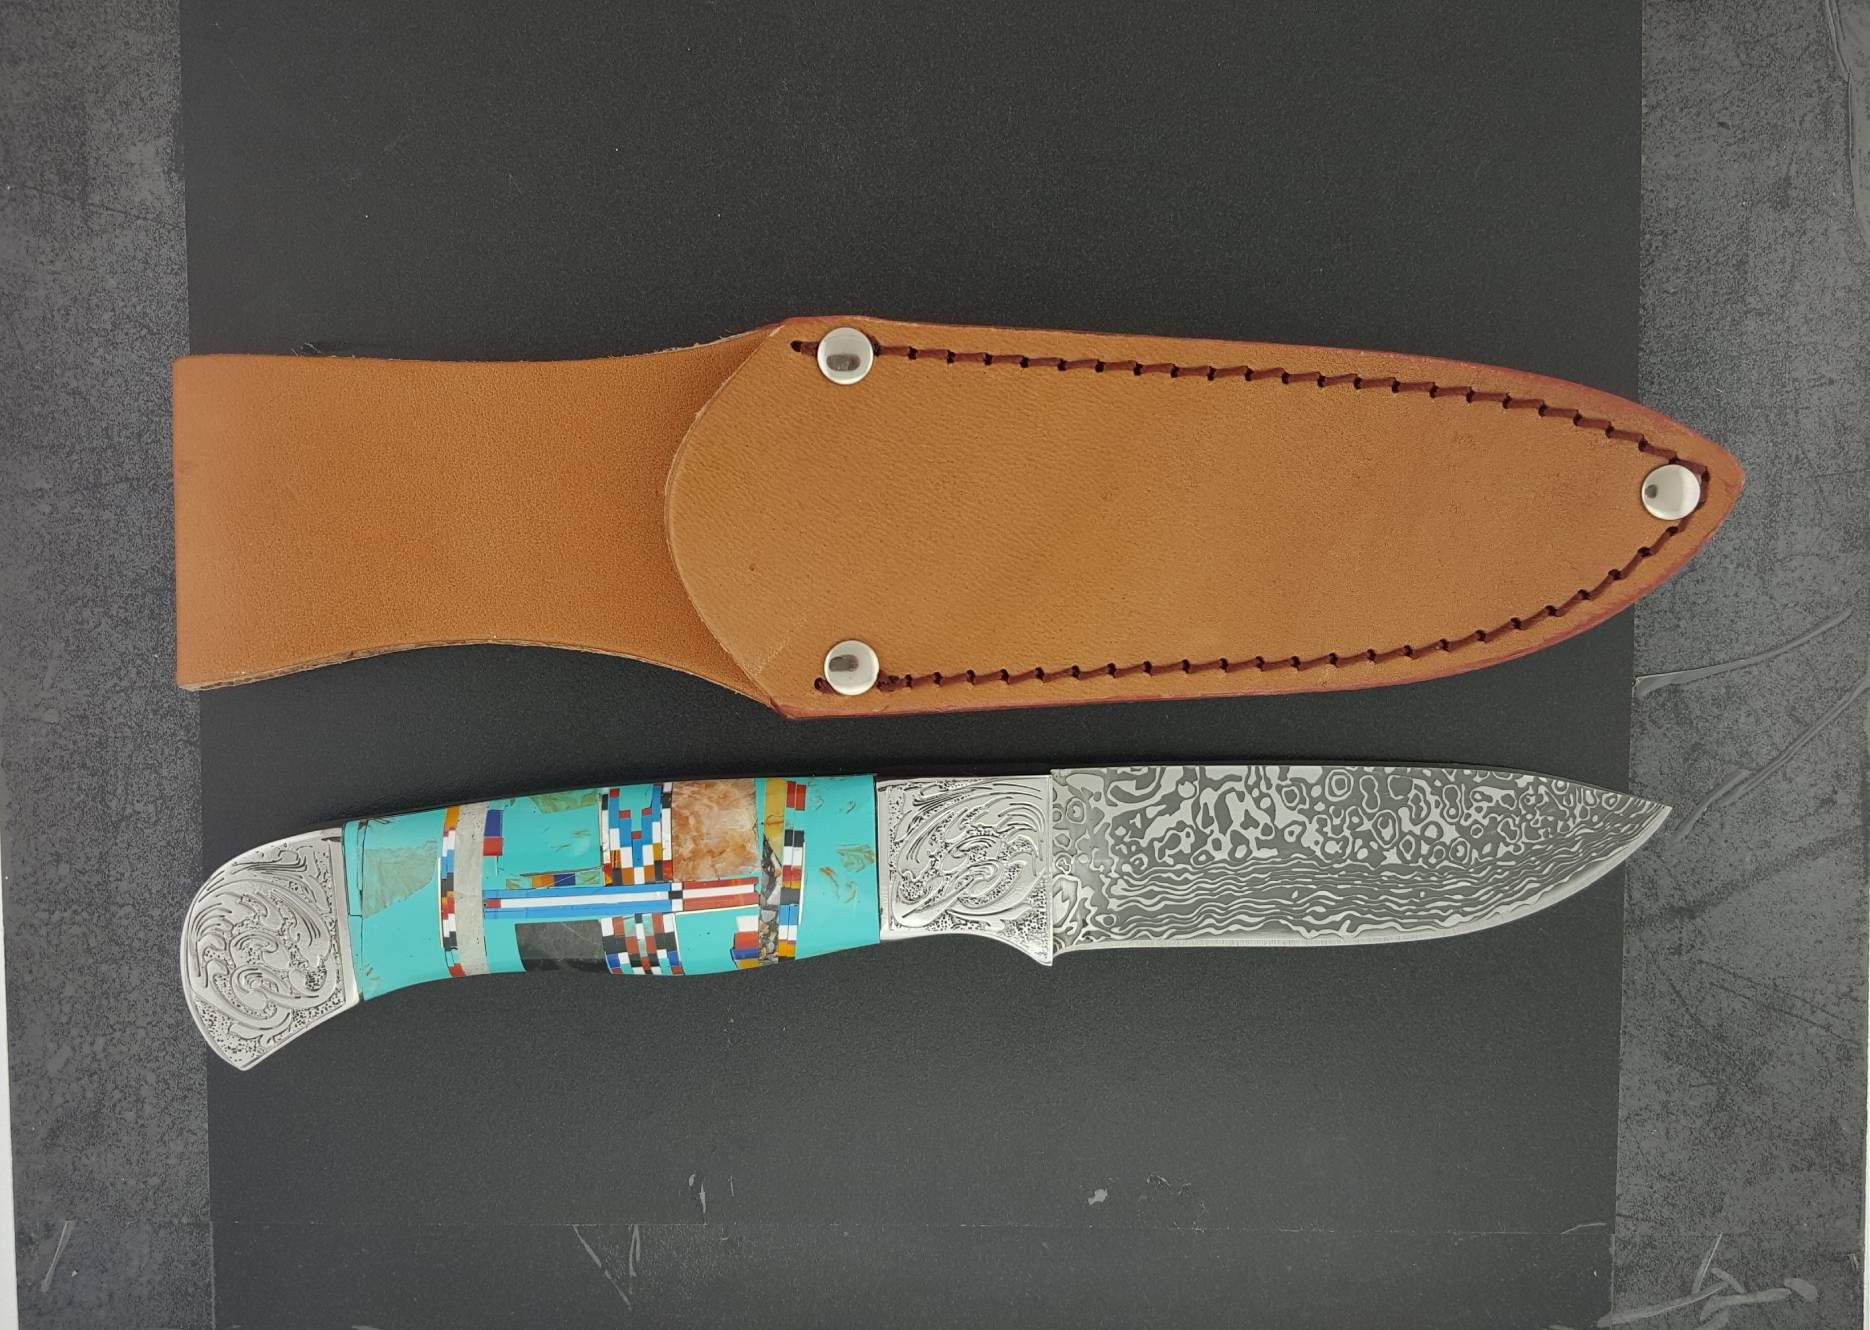 Stainless Steel Knife Laser Cut Blade Stainless Steel Knife Turquoise Inlay